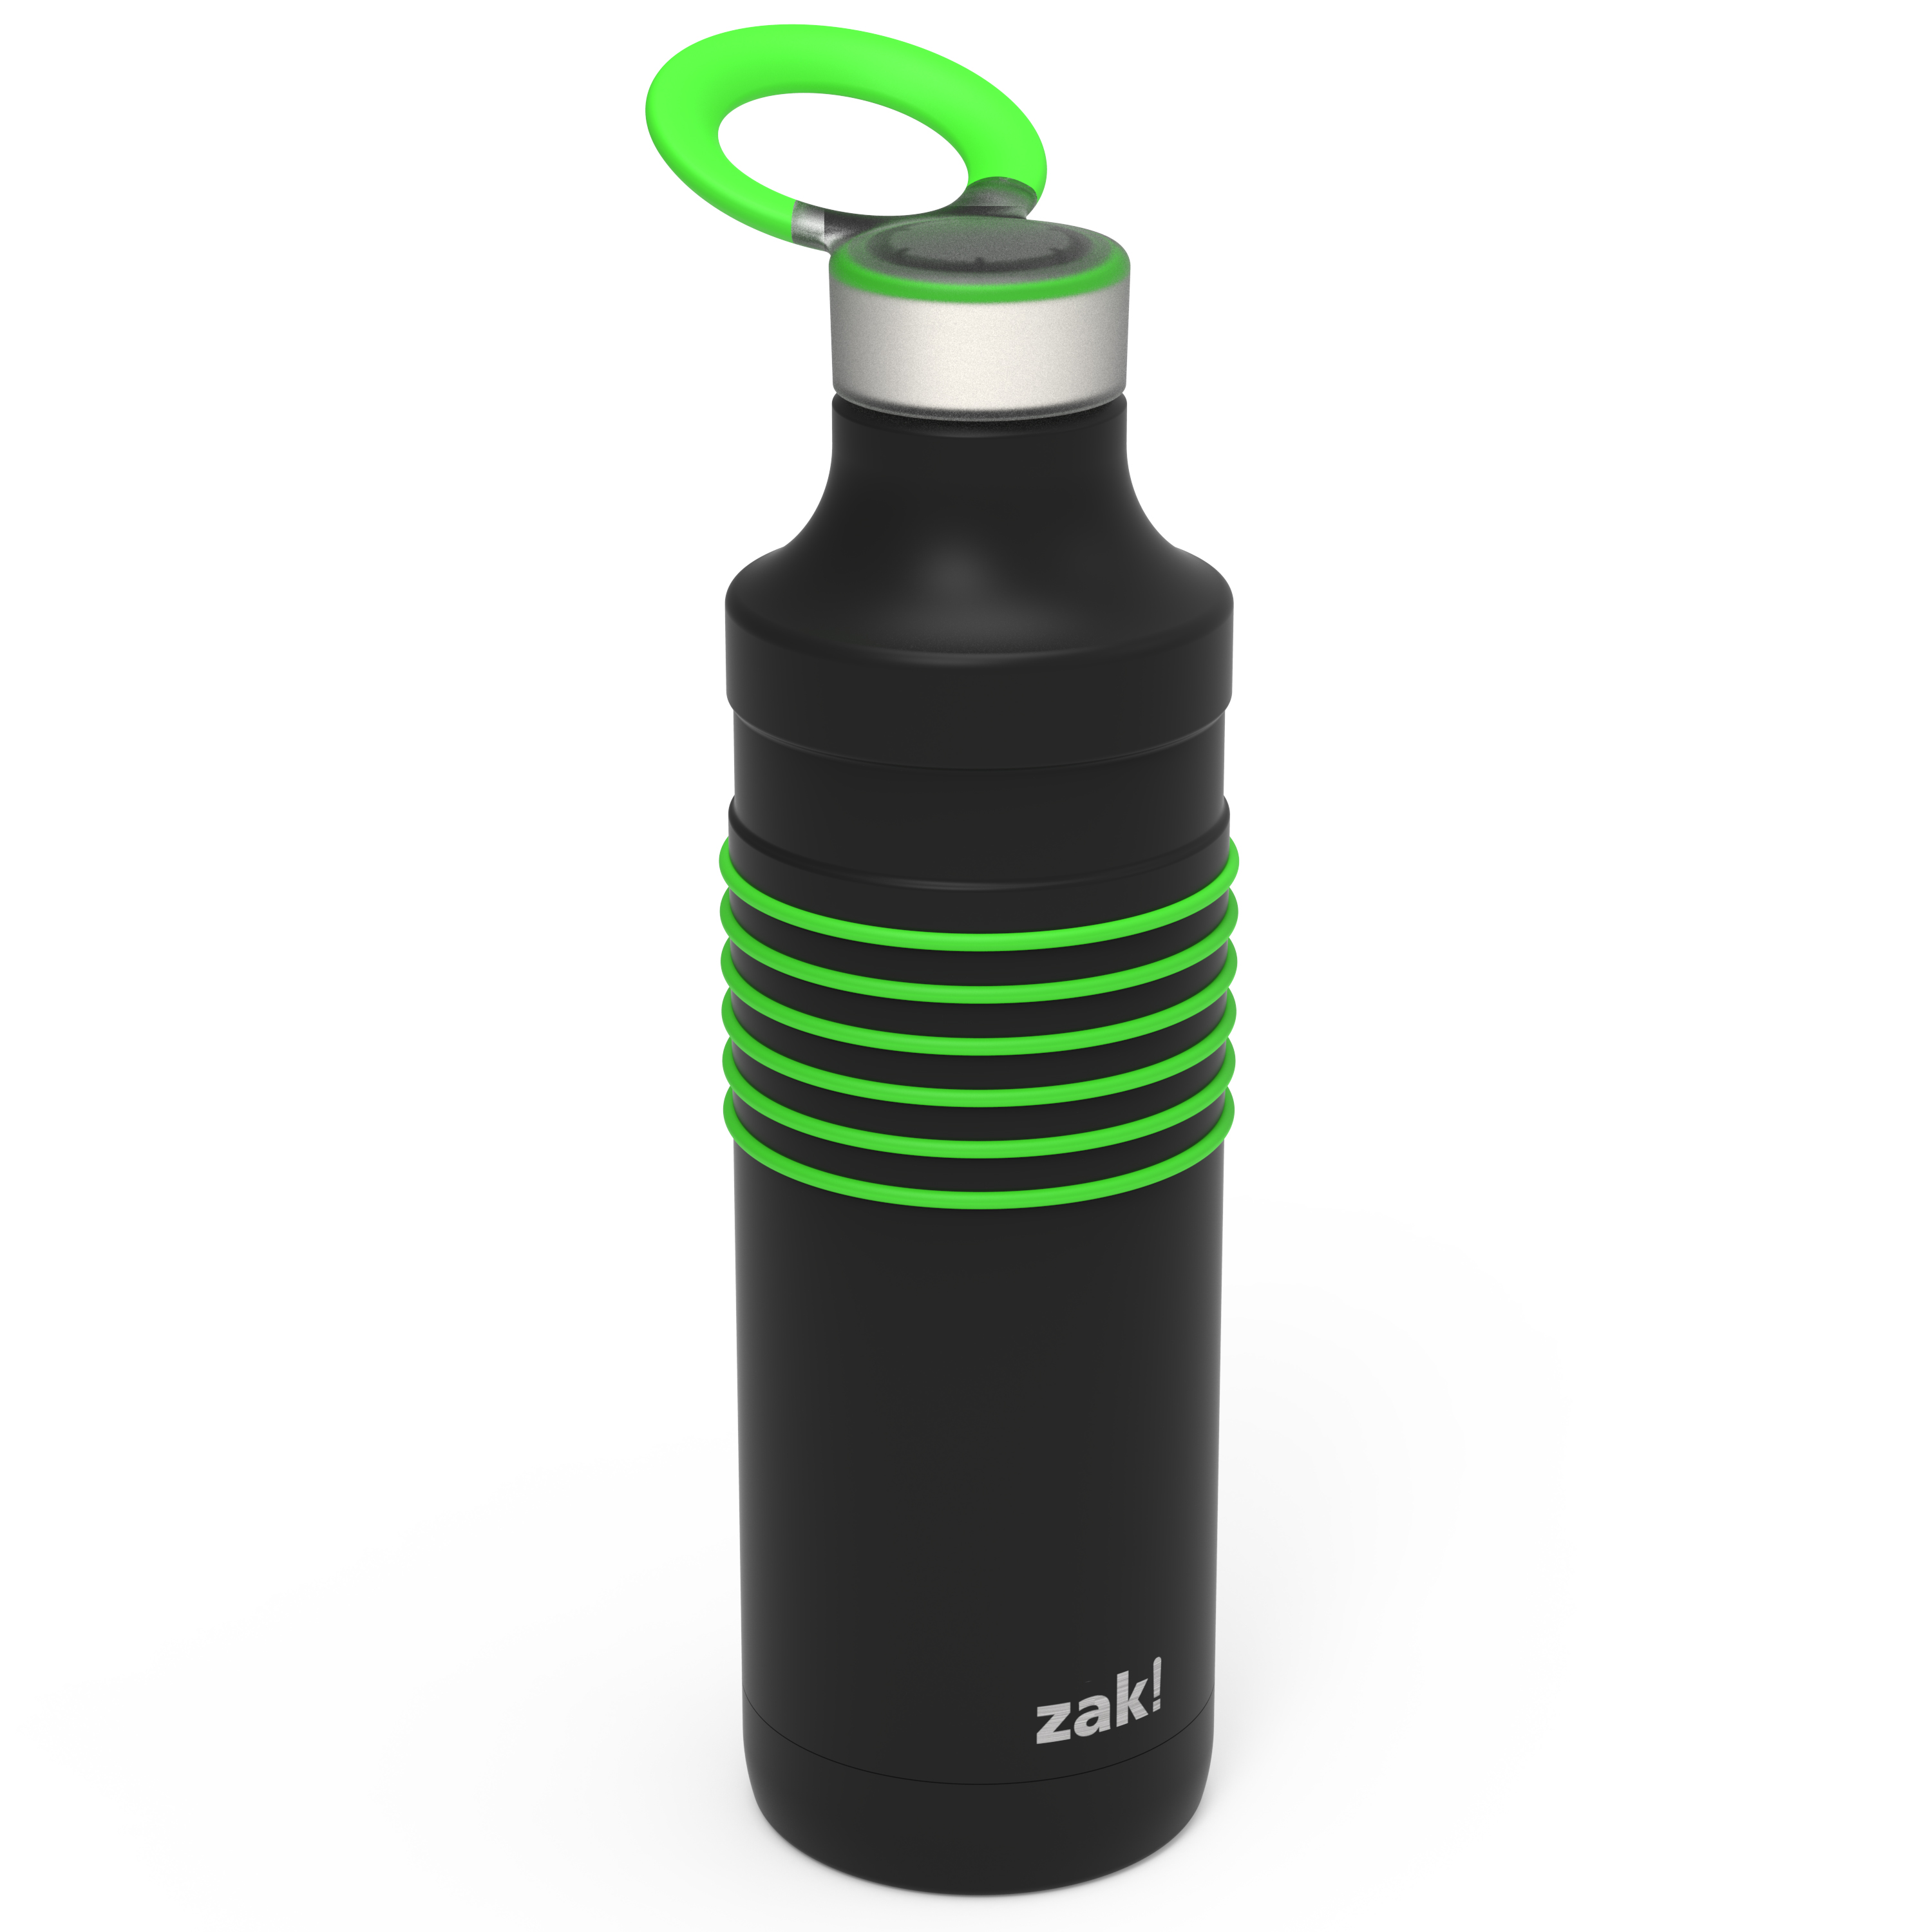 HydraTrak 22 ounce Vacuum Insulated Stainless Steel Tumbler, Black with Green Rings slideshow image 2